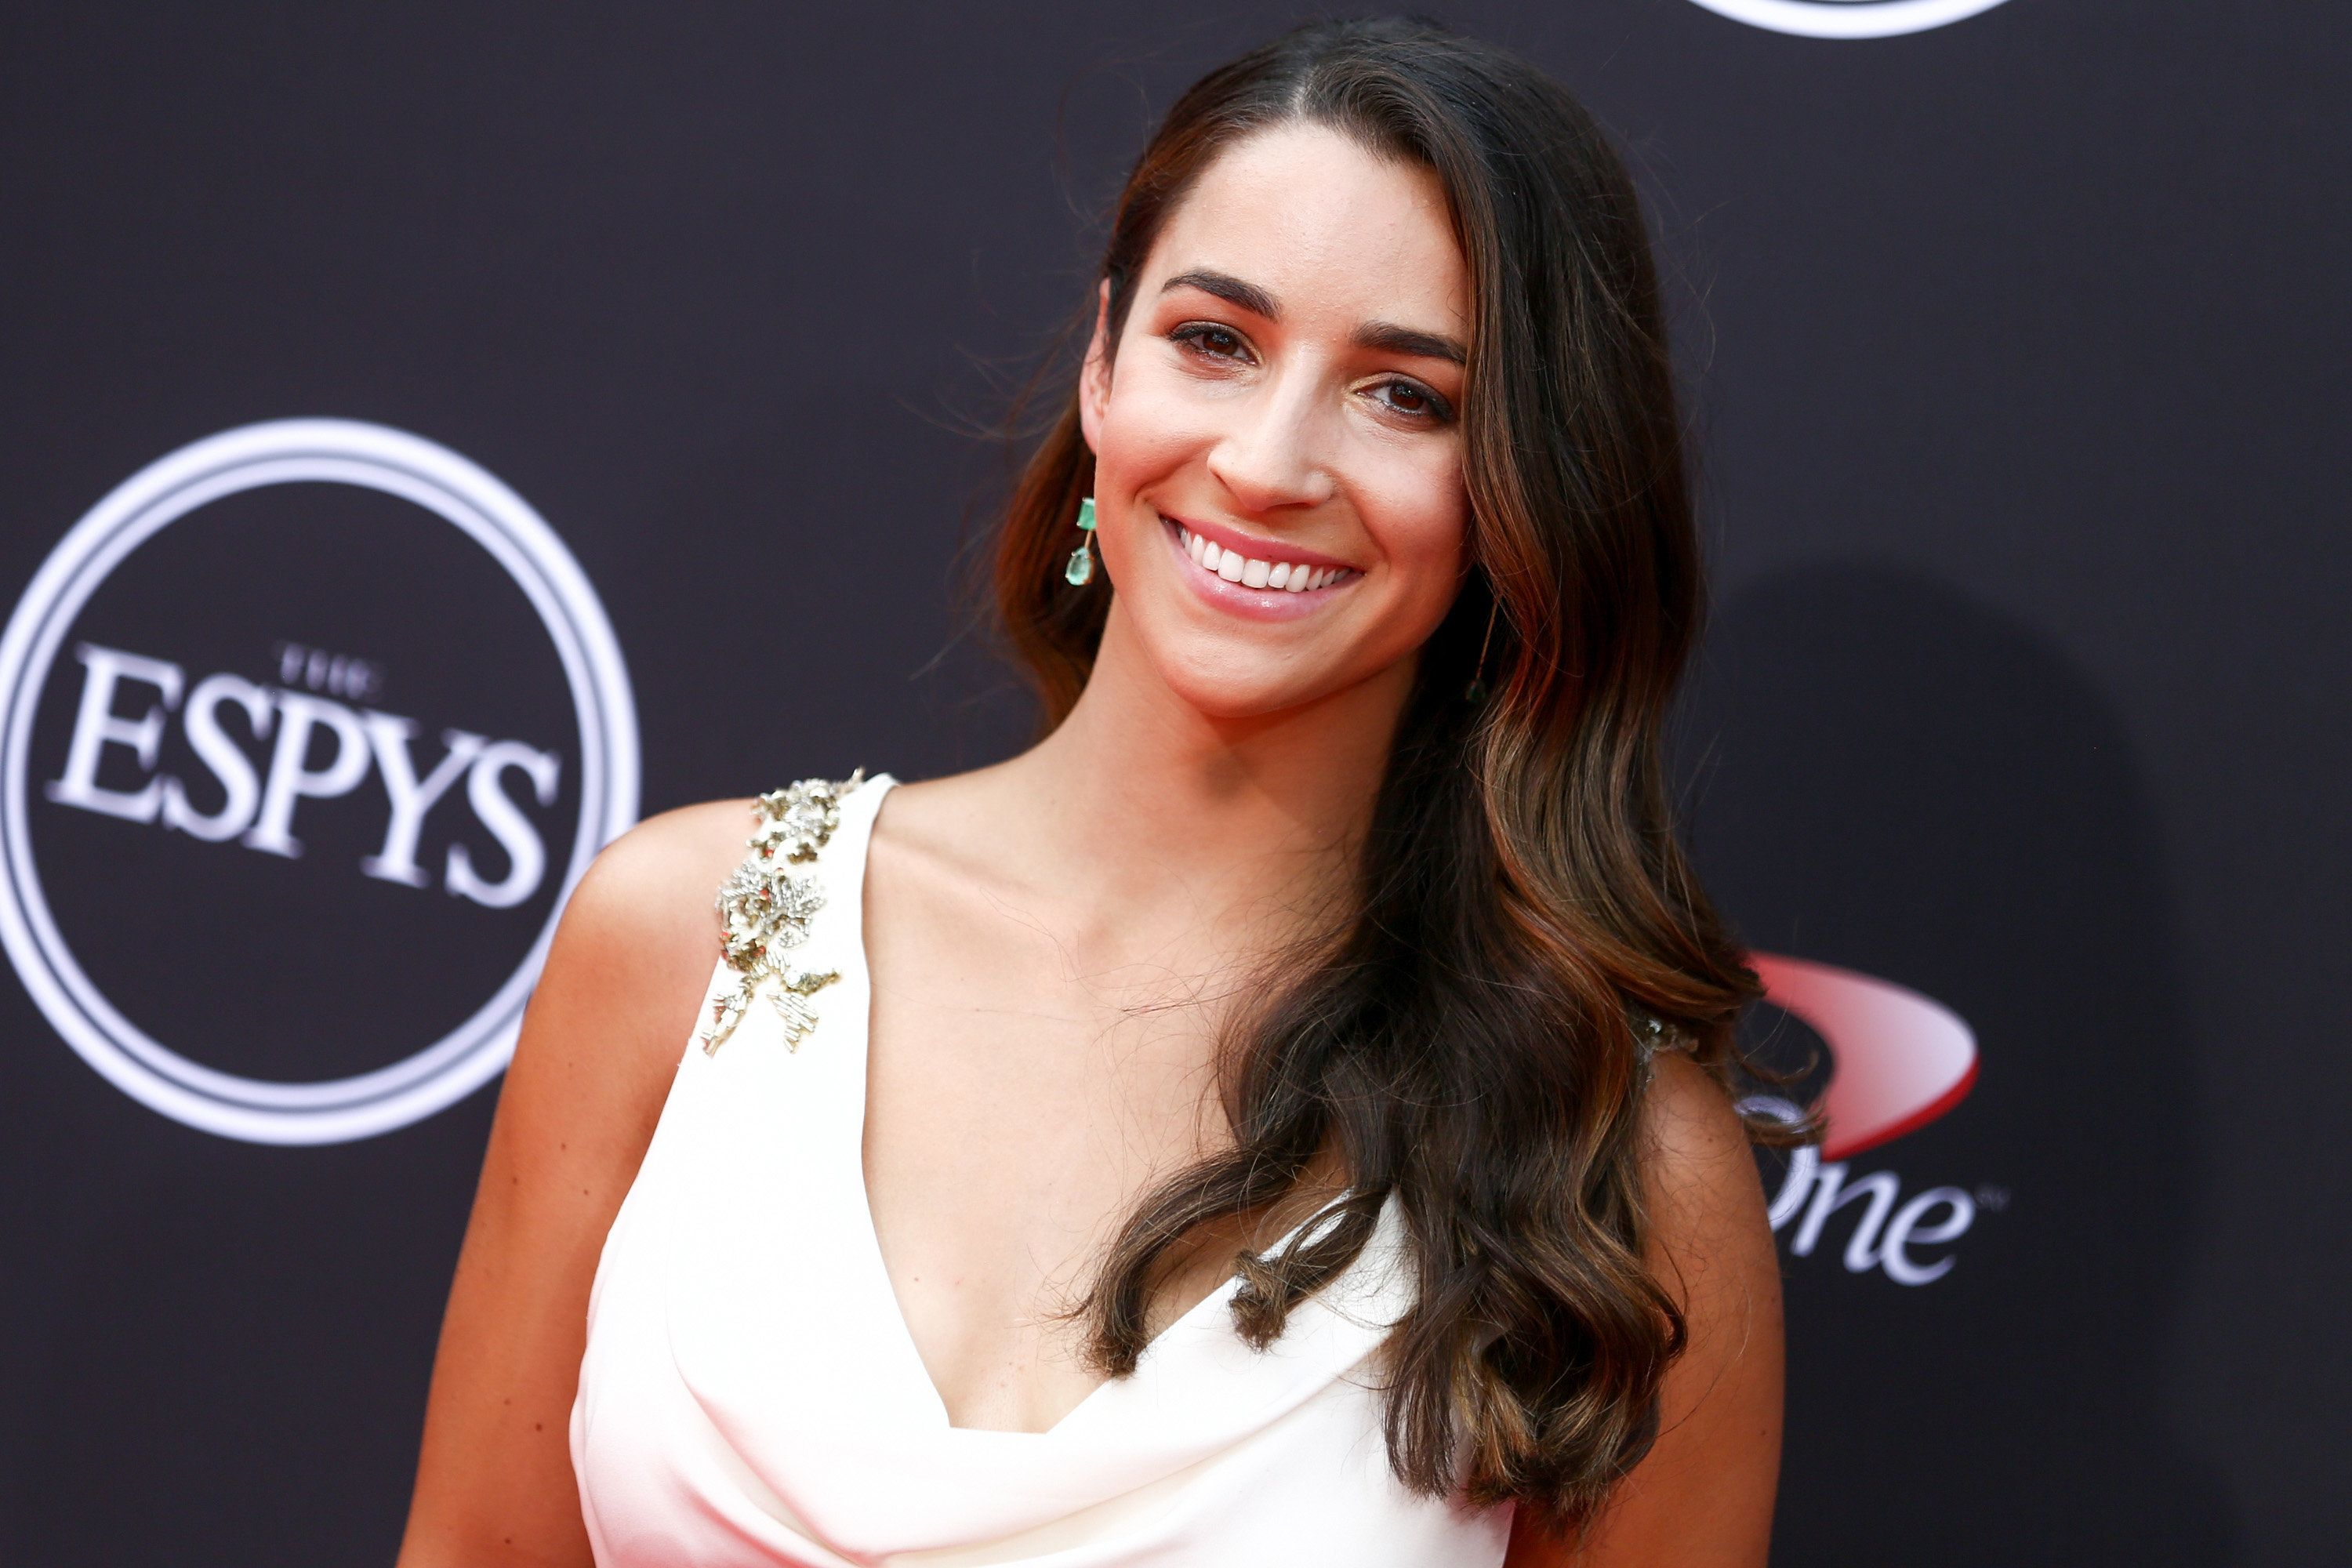 LOS ANGELES, CA - JULY 18:  Aly Raisman attends the 2018 ESPYS at Microsoft Theater on July 18, 2018 in Los Angeles, California.  (Photo by Rich Fury/WireImage)